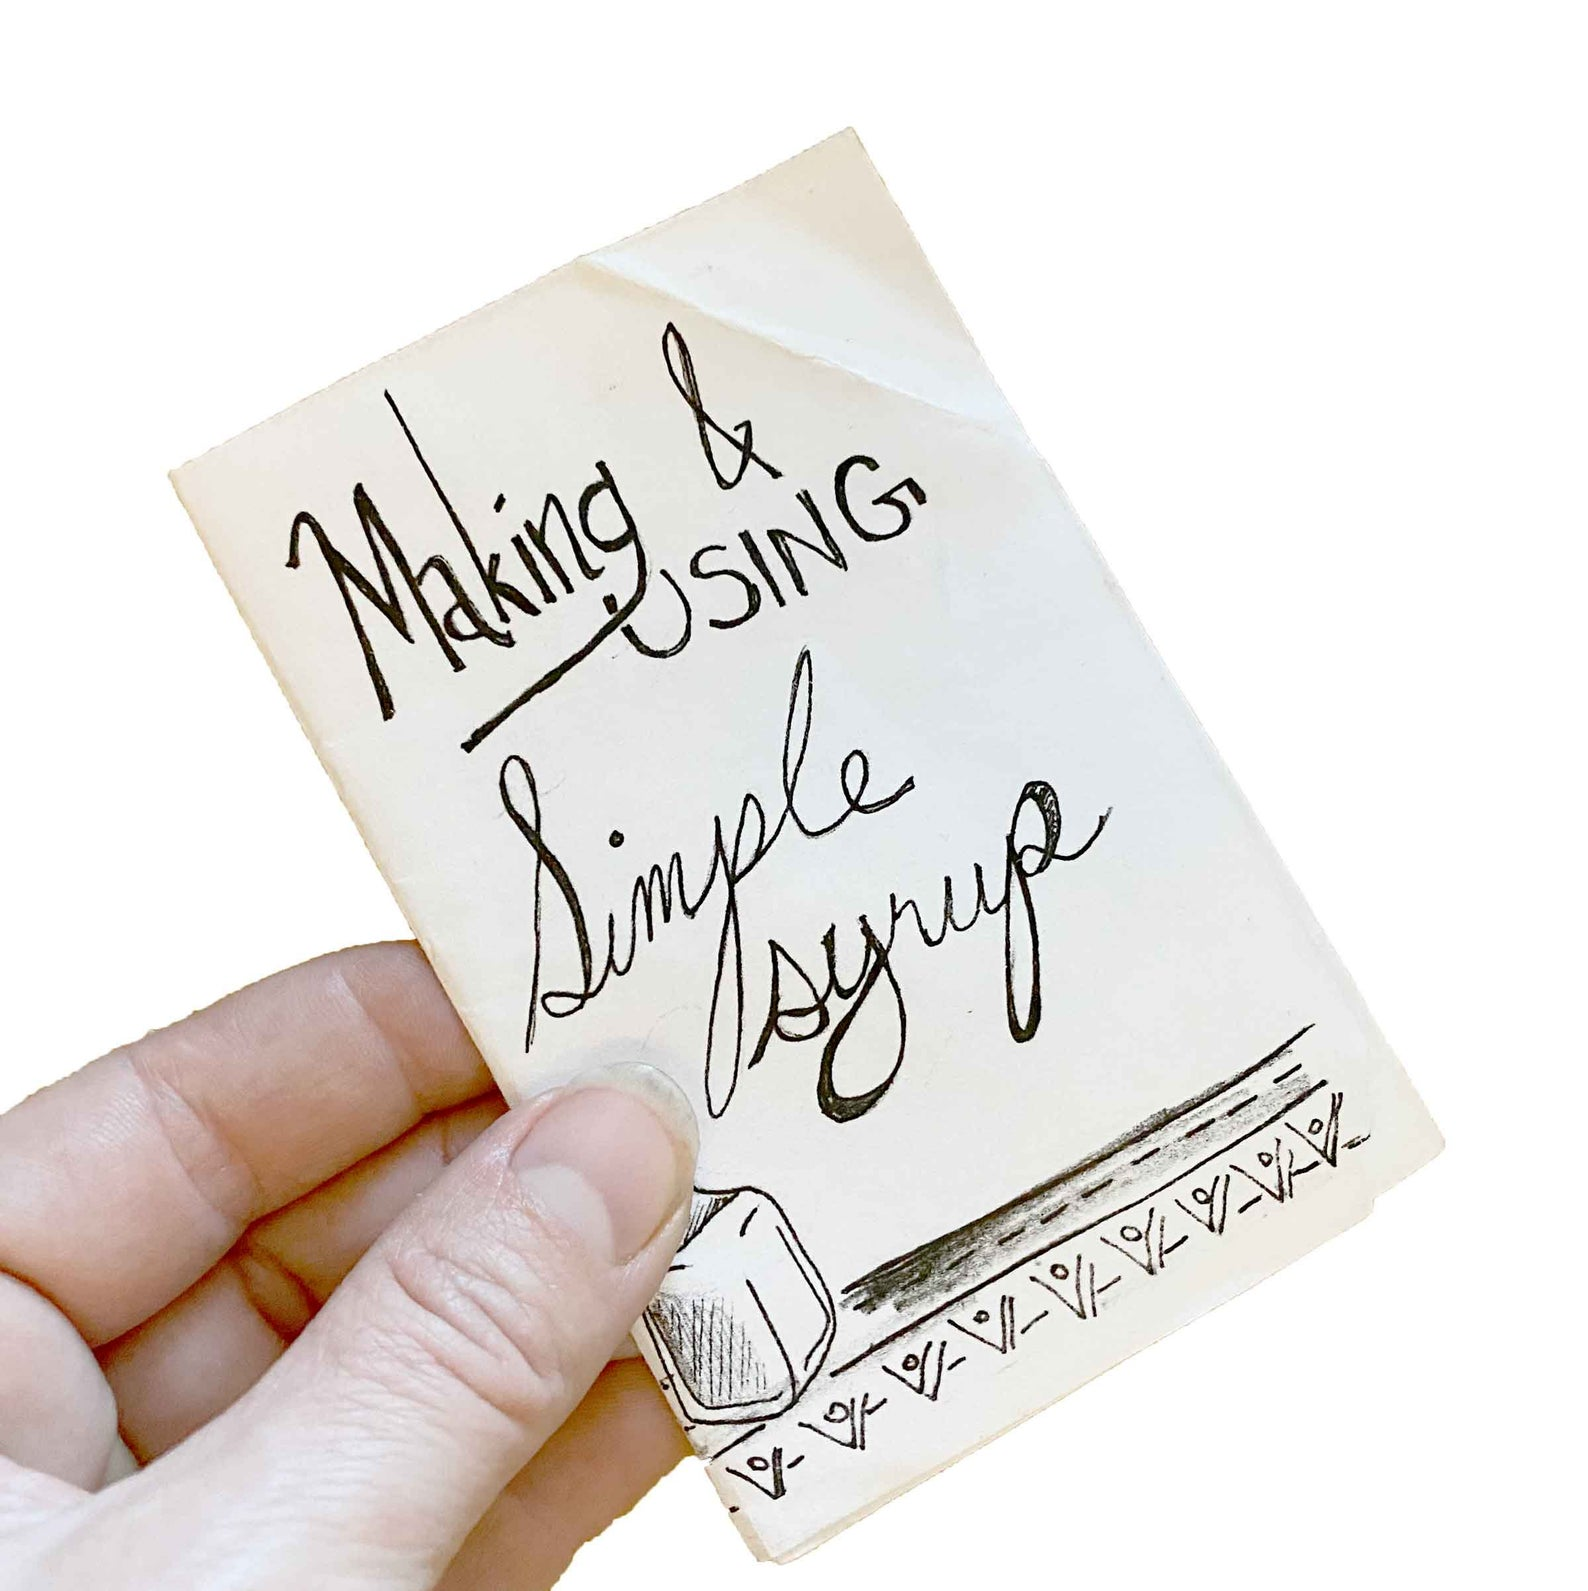 Making and Using Simple Syrups Mini Zine